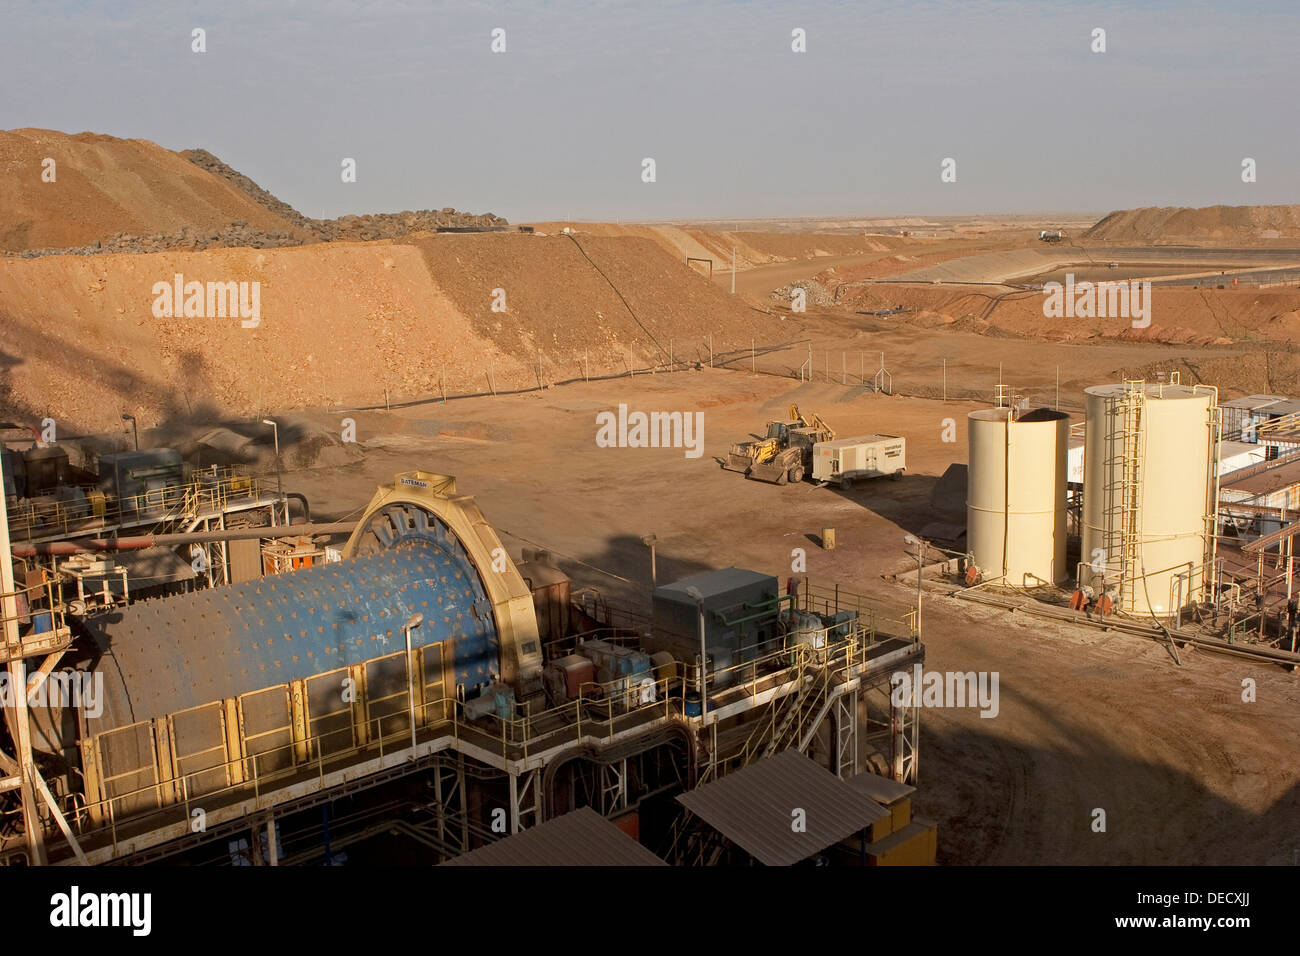 From carbon in leach plant to ball mill and water ponds, on open pit surface gold mine processing plant, Mauritania, NW Africa - Stock Image